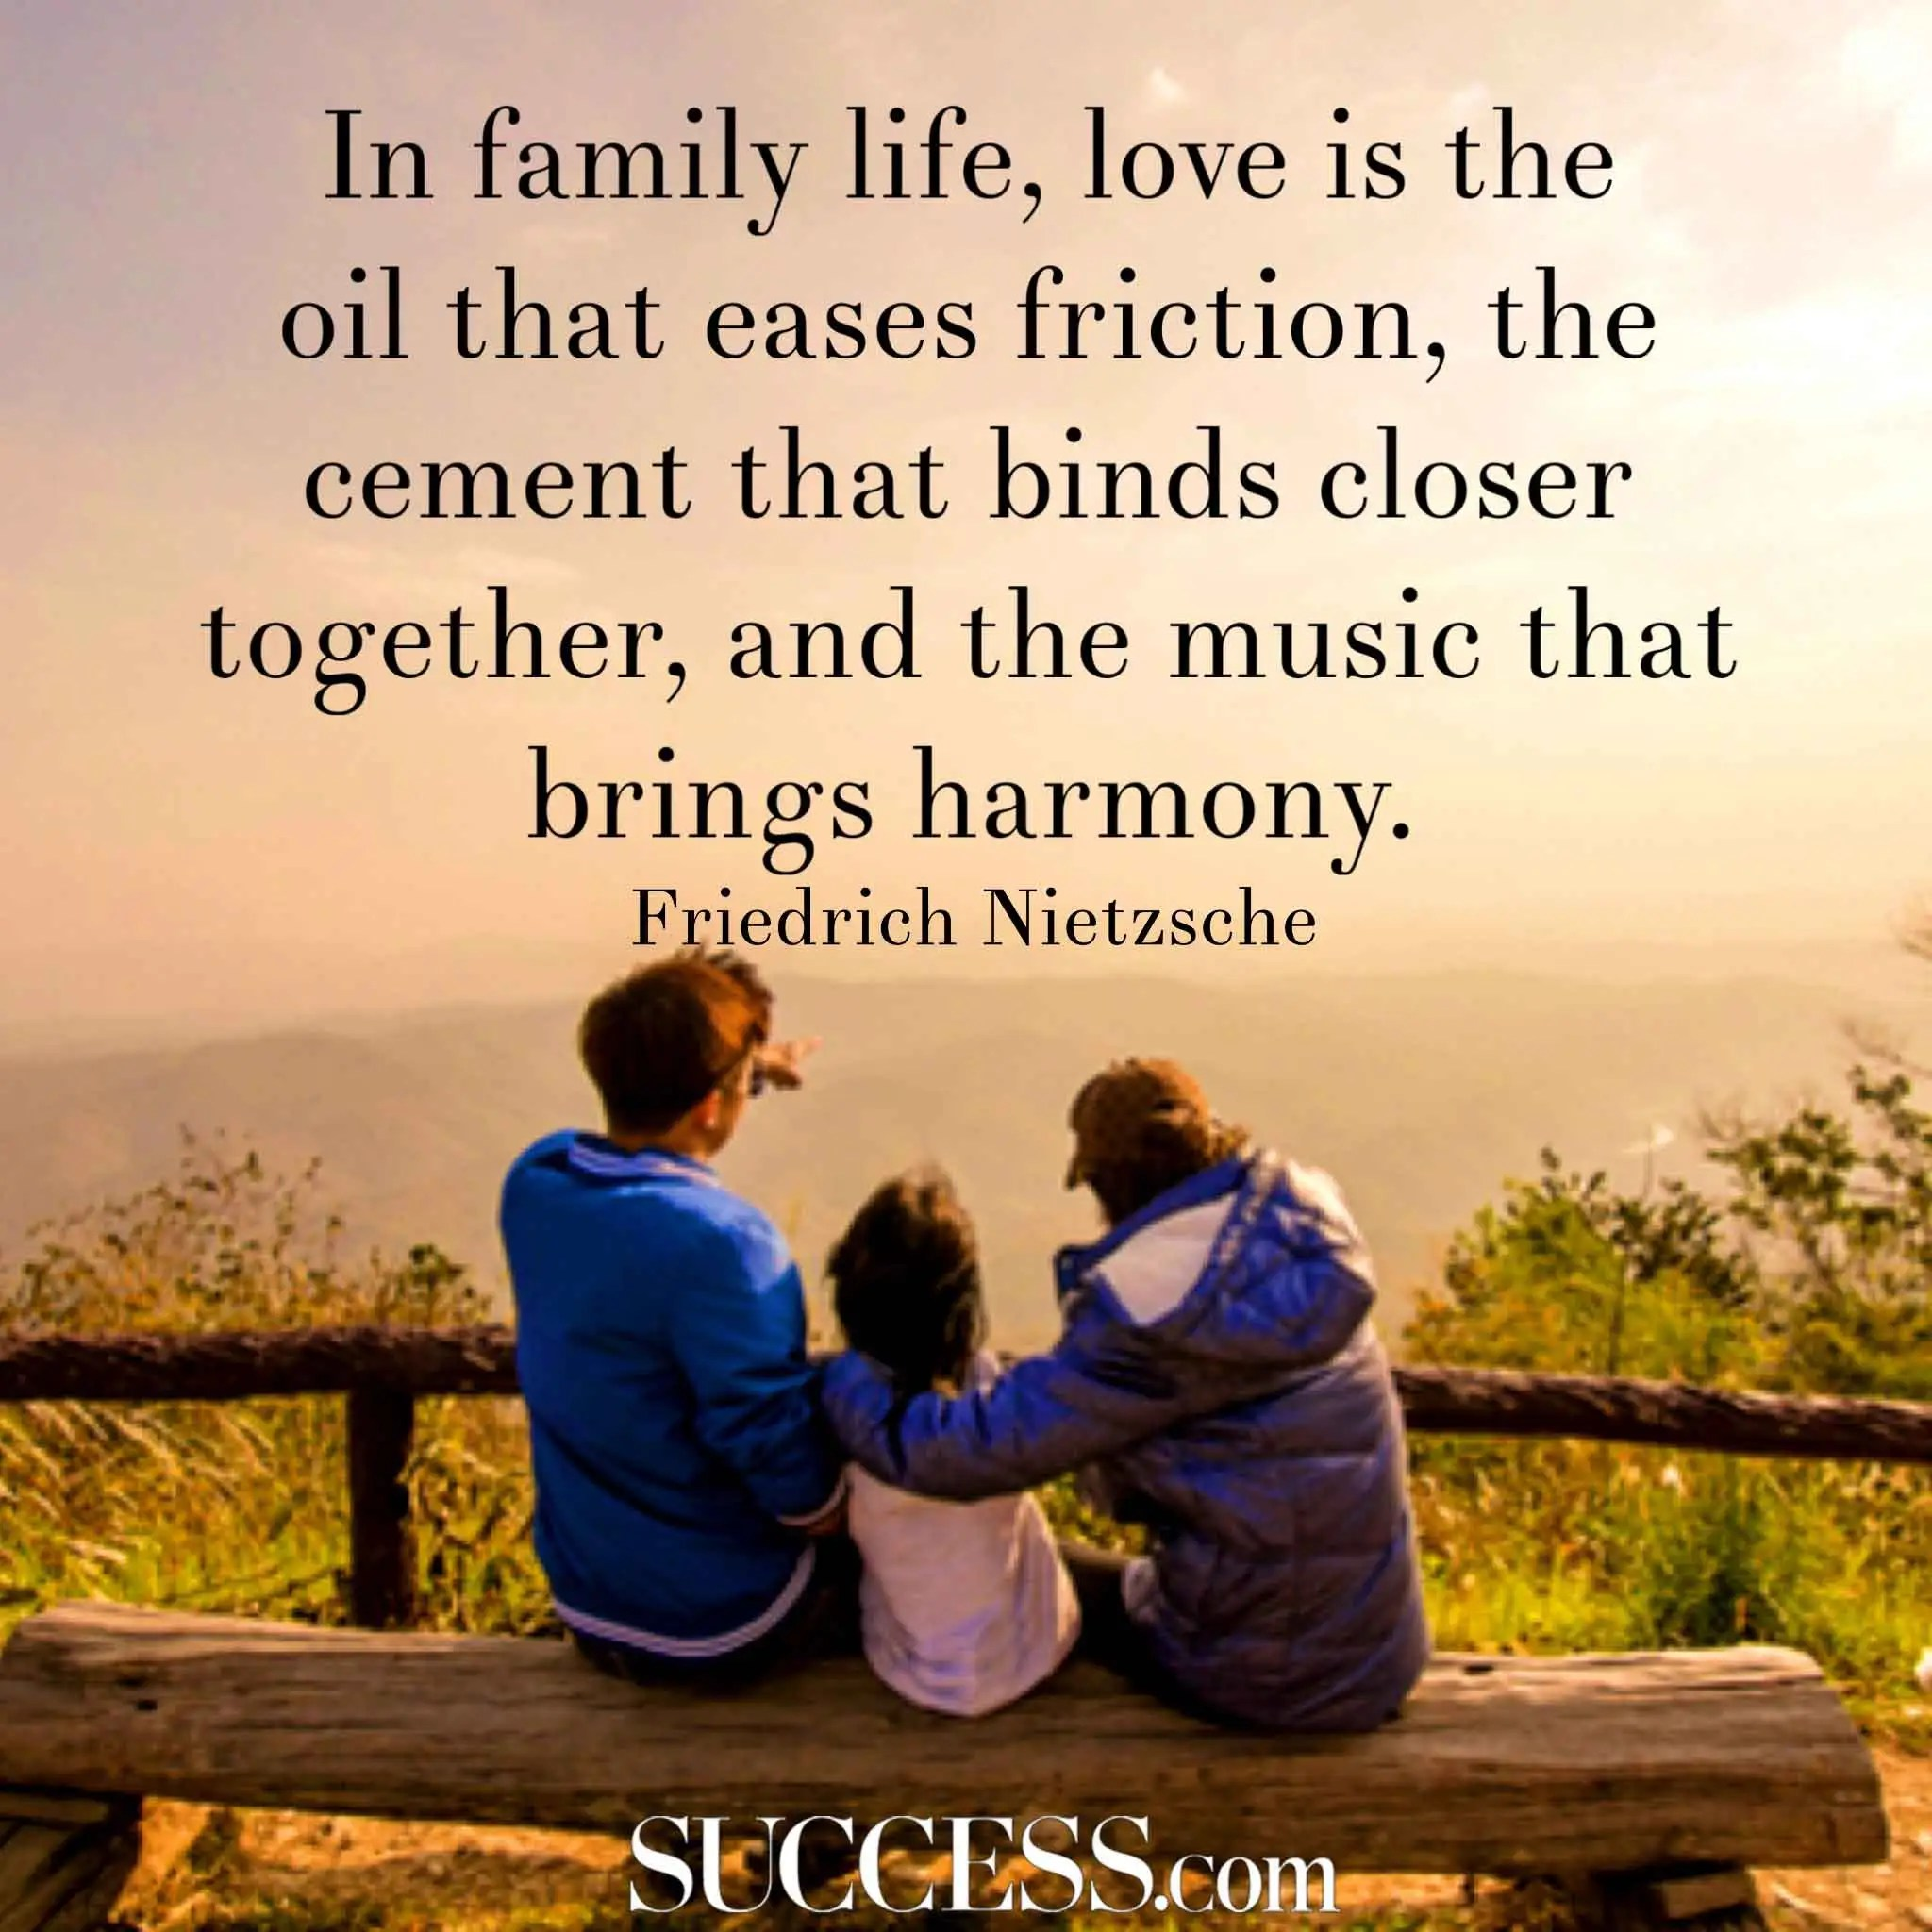 Image of: Images Success Magazine 14 Loving Quotes About Family